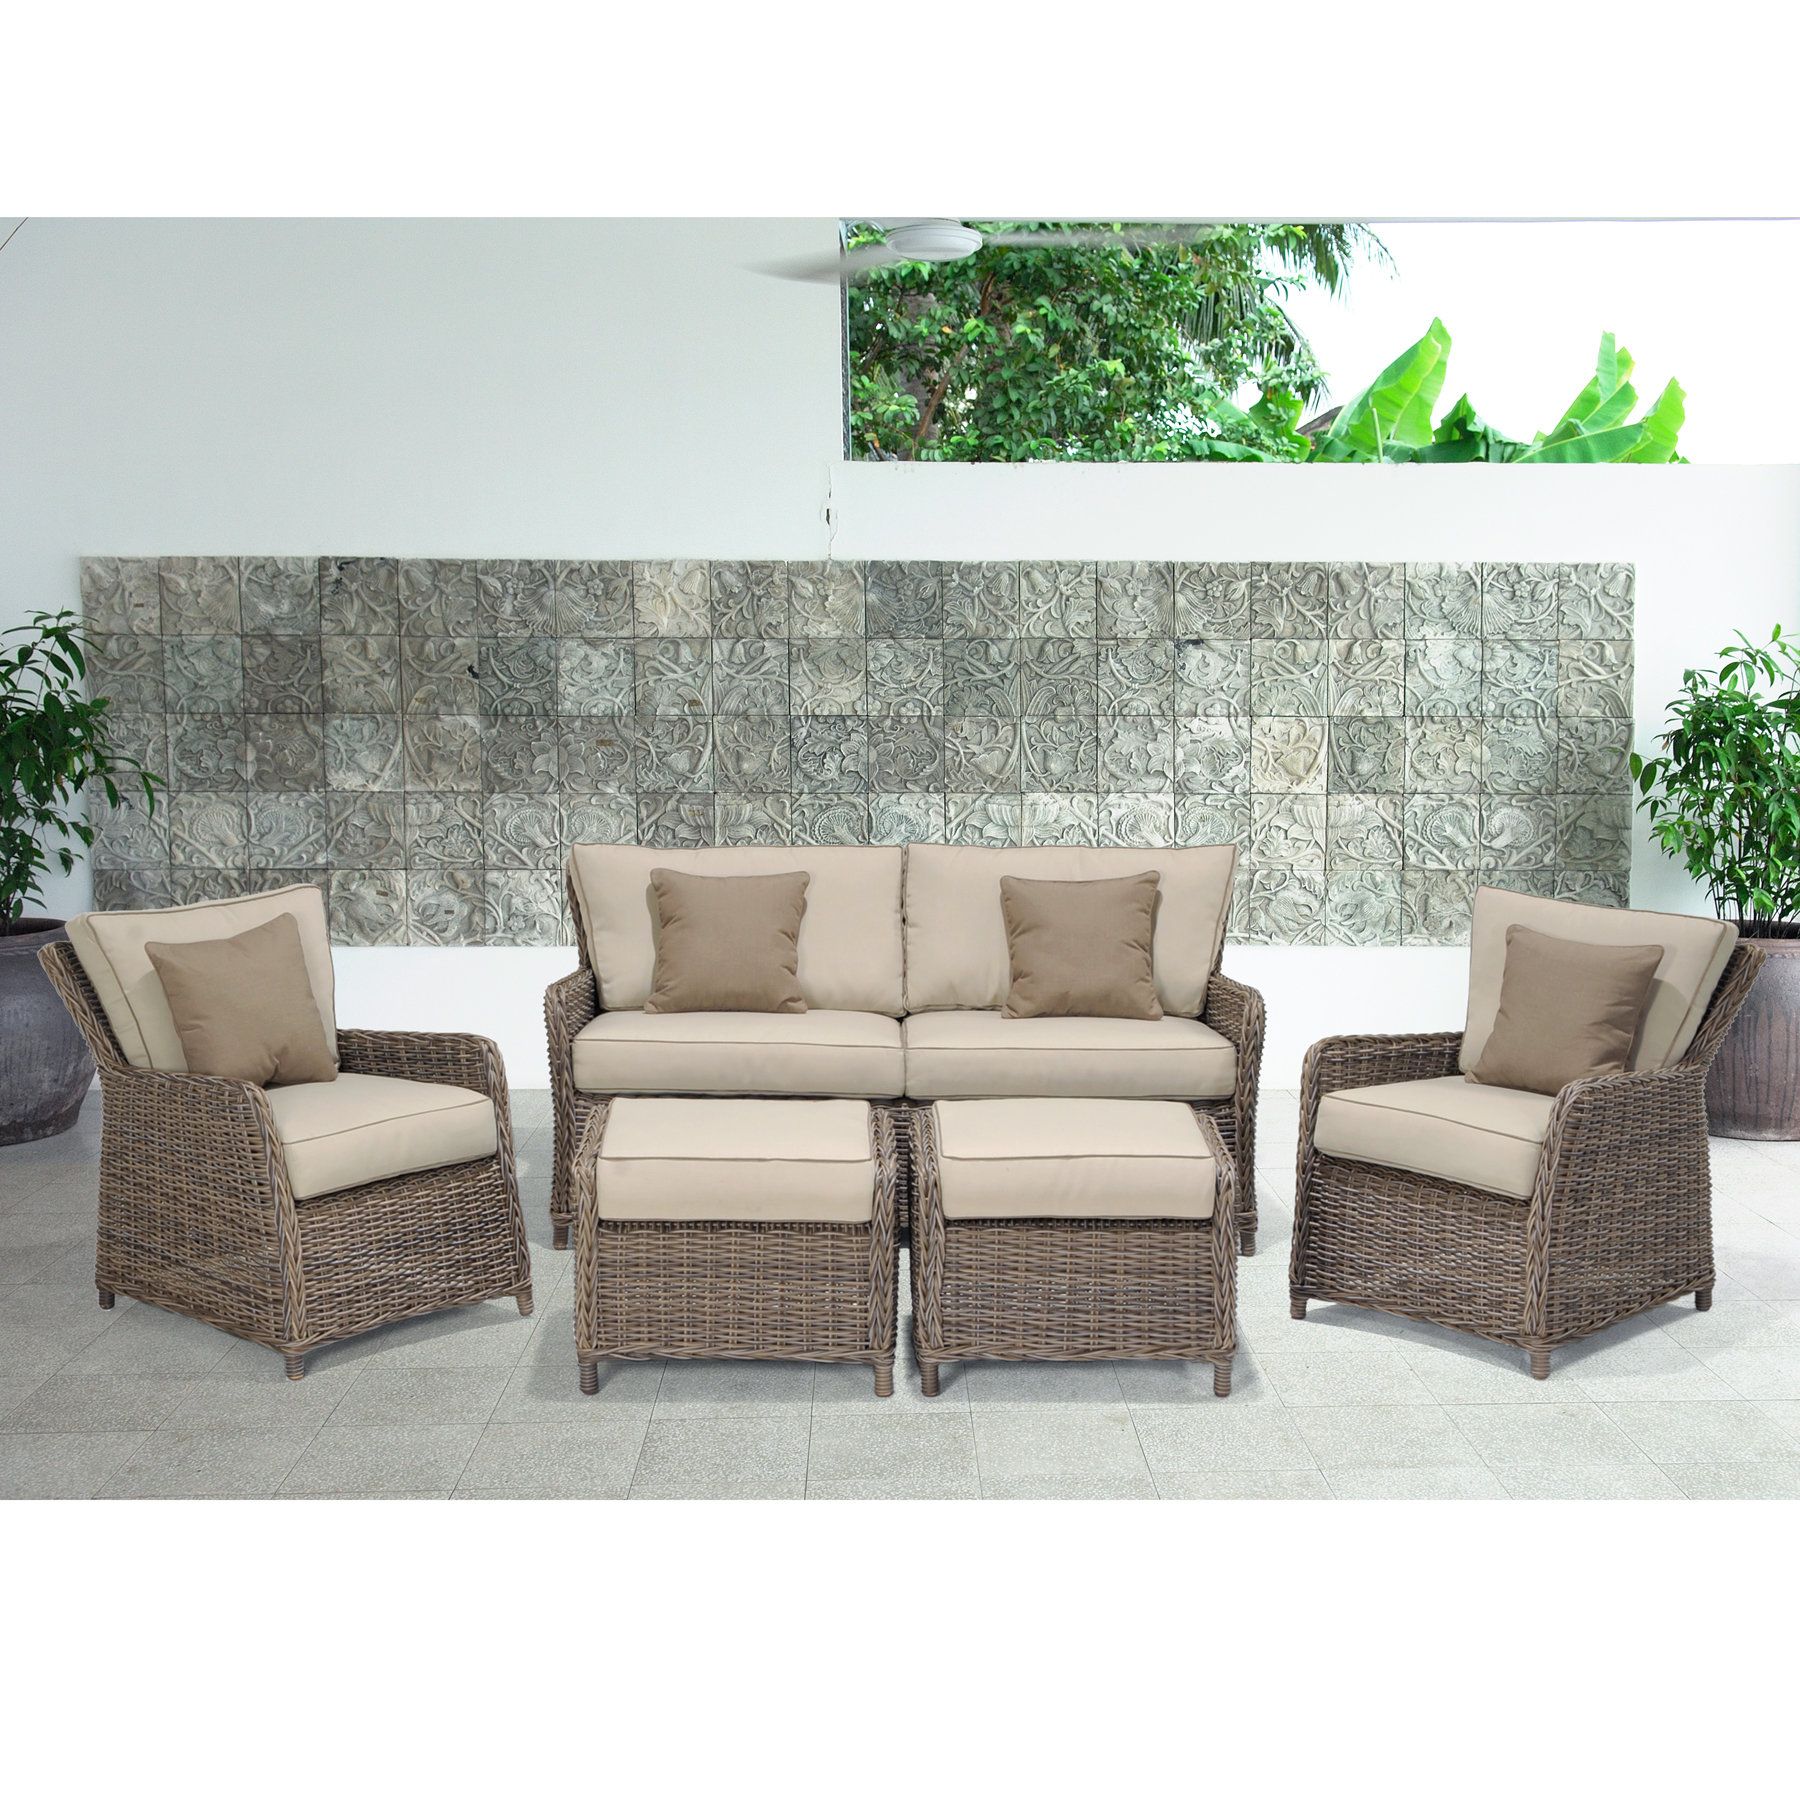 Avadi Outdoor 5 Piece Sofa Seating Group For Well Known Avadi Outdoor Sofas & Ottomans 3 Piece Set (View 2 of 25)